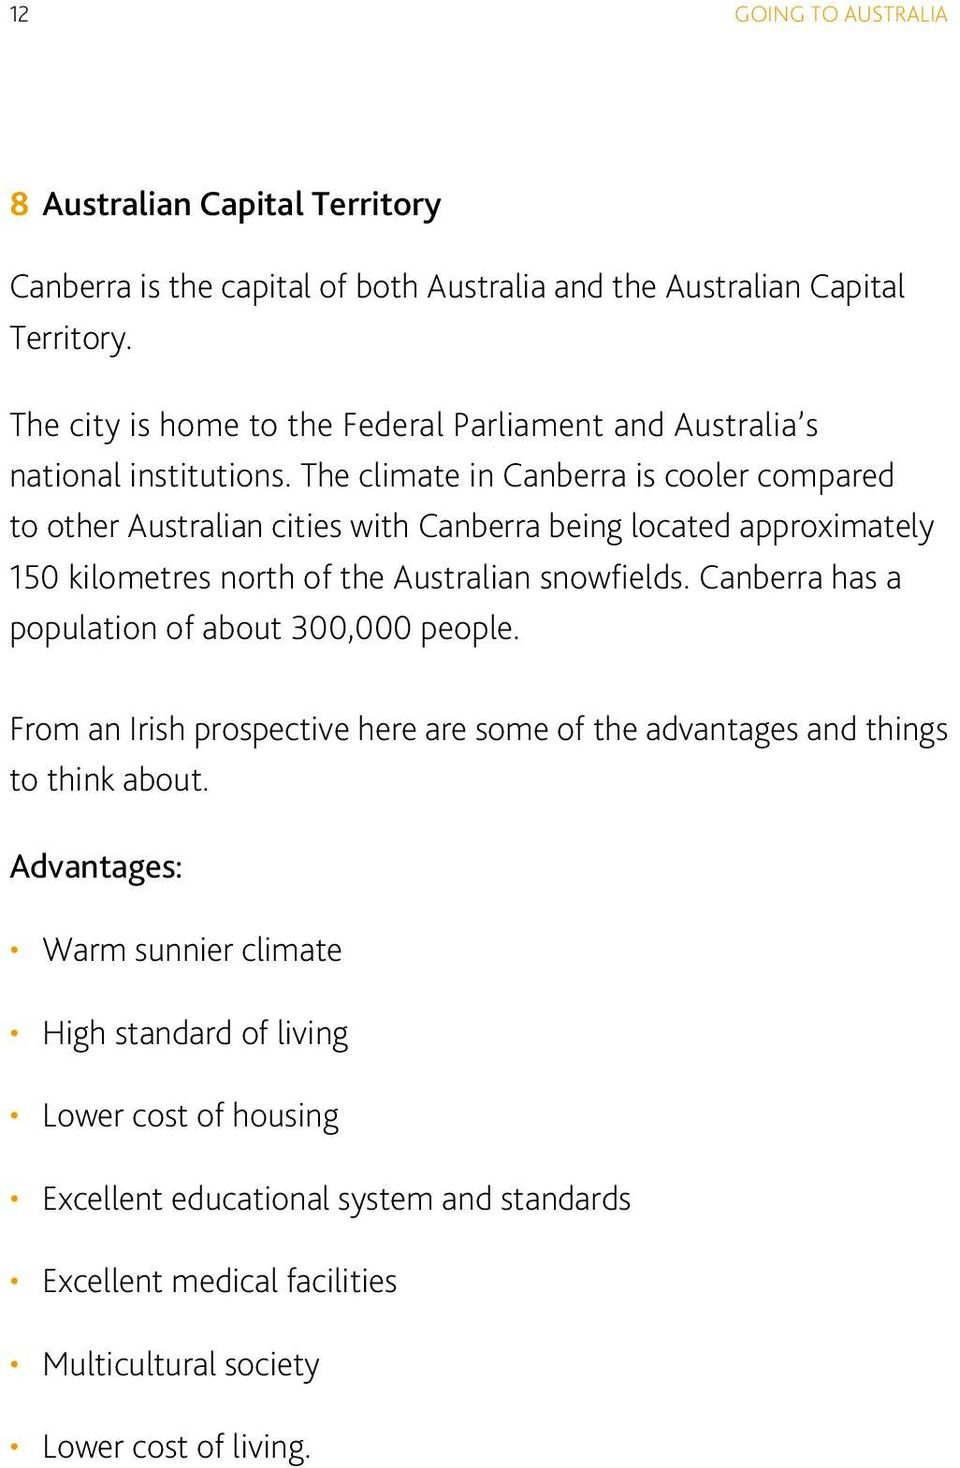 The climate in Canberra is cooler compared to other Australian cities with Canberra being located approximately 150 kilometres north of the Australian snowfields.